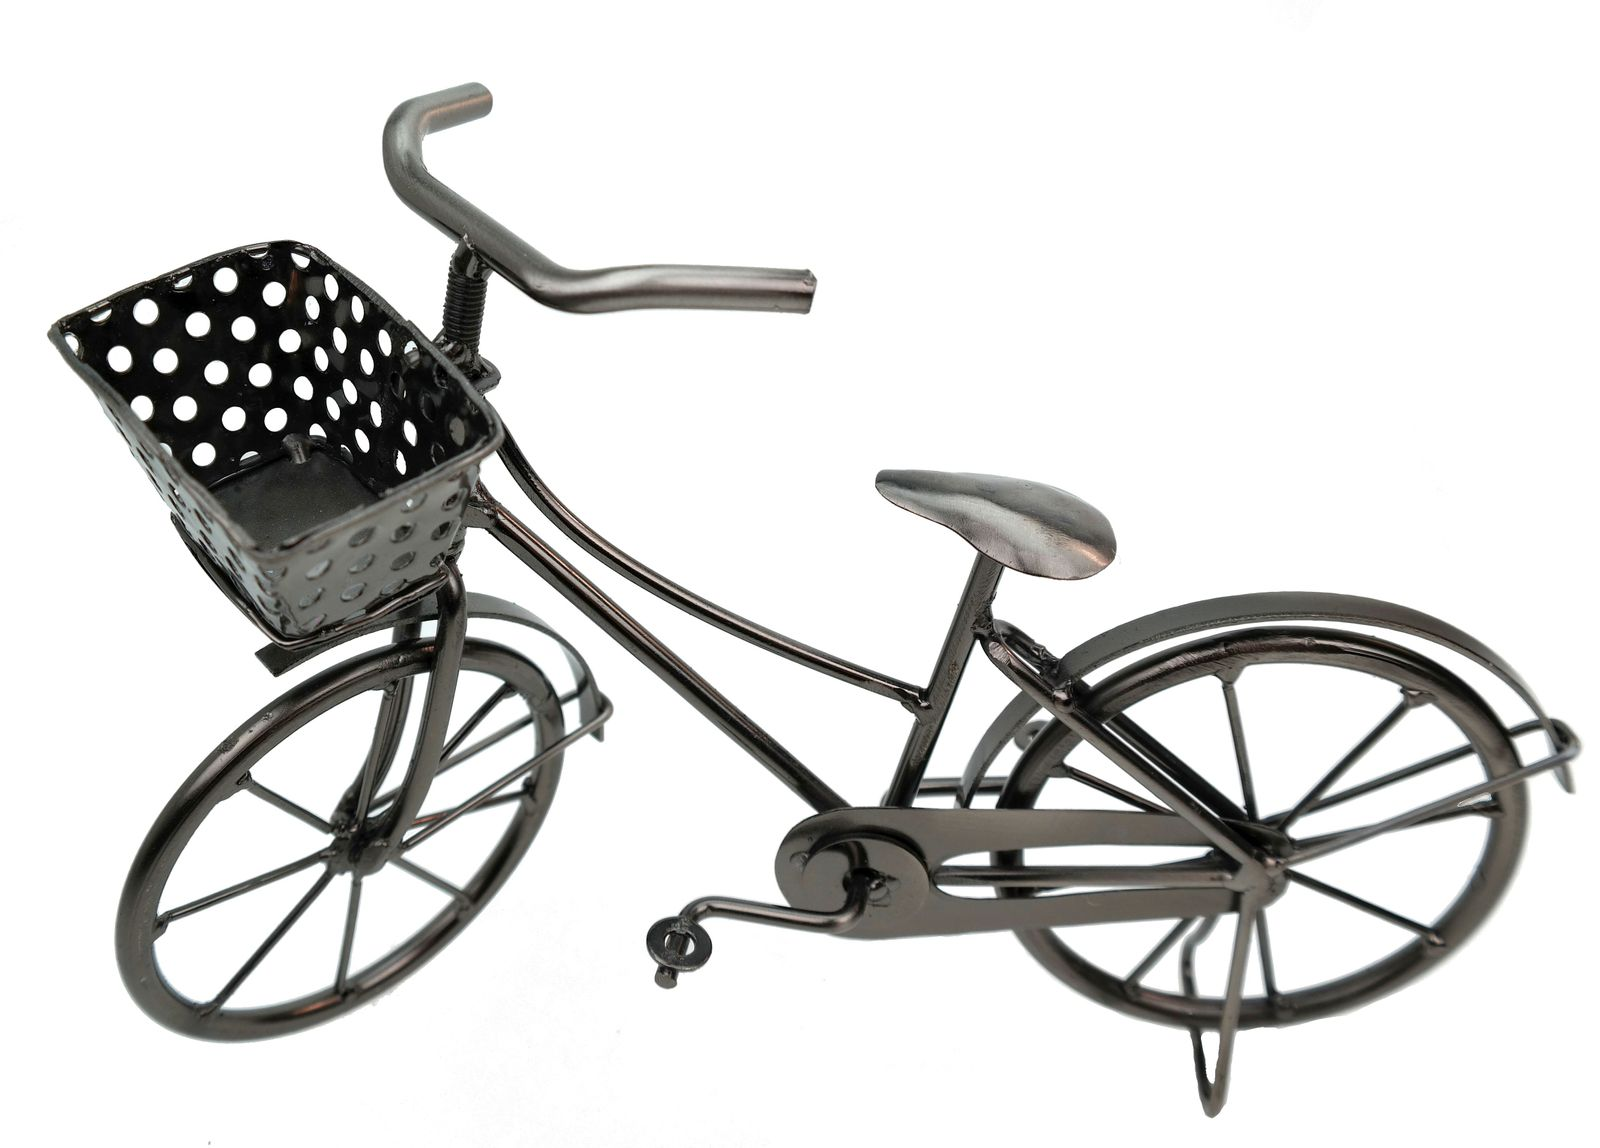 deko fahrrad mit korb aus metall dekoration geldgeschenk bike ebay. Black Bedroom Furniture Sets. Home Design Ideas